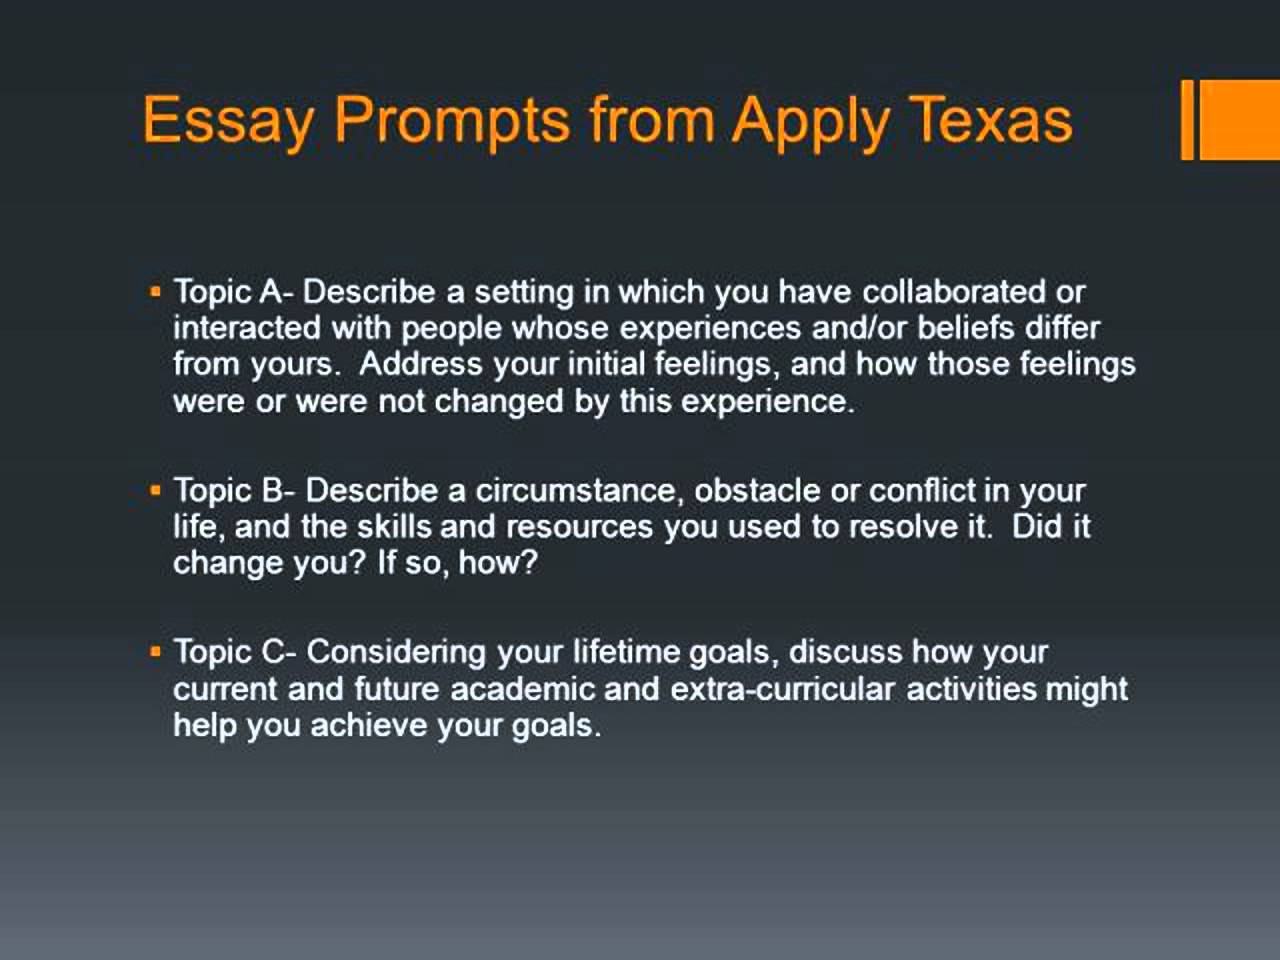 002 Apply Texas Essay Prompts Youtube Topic Examples Maxresde Example Wonderful Applytexas 2018-19 Prompt C Ut Austin